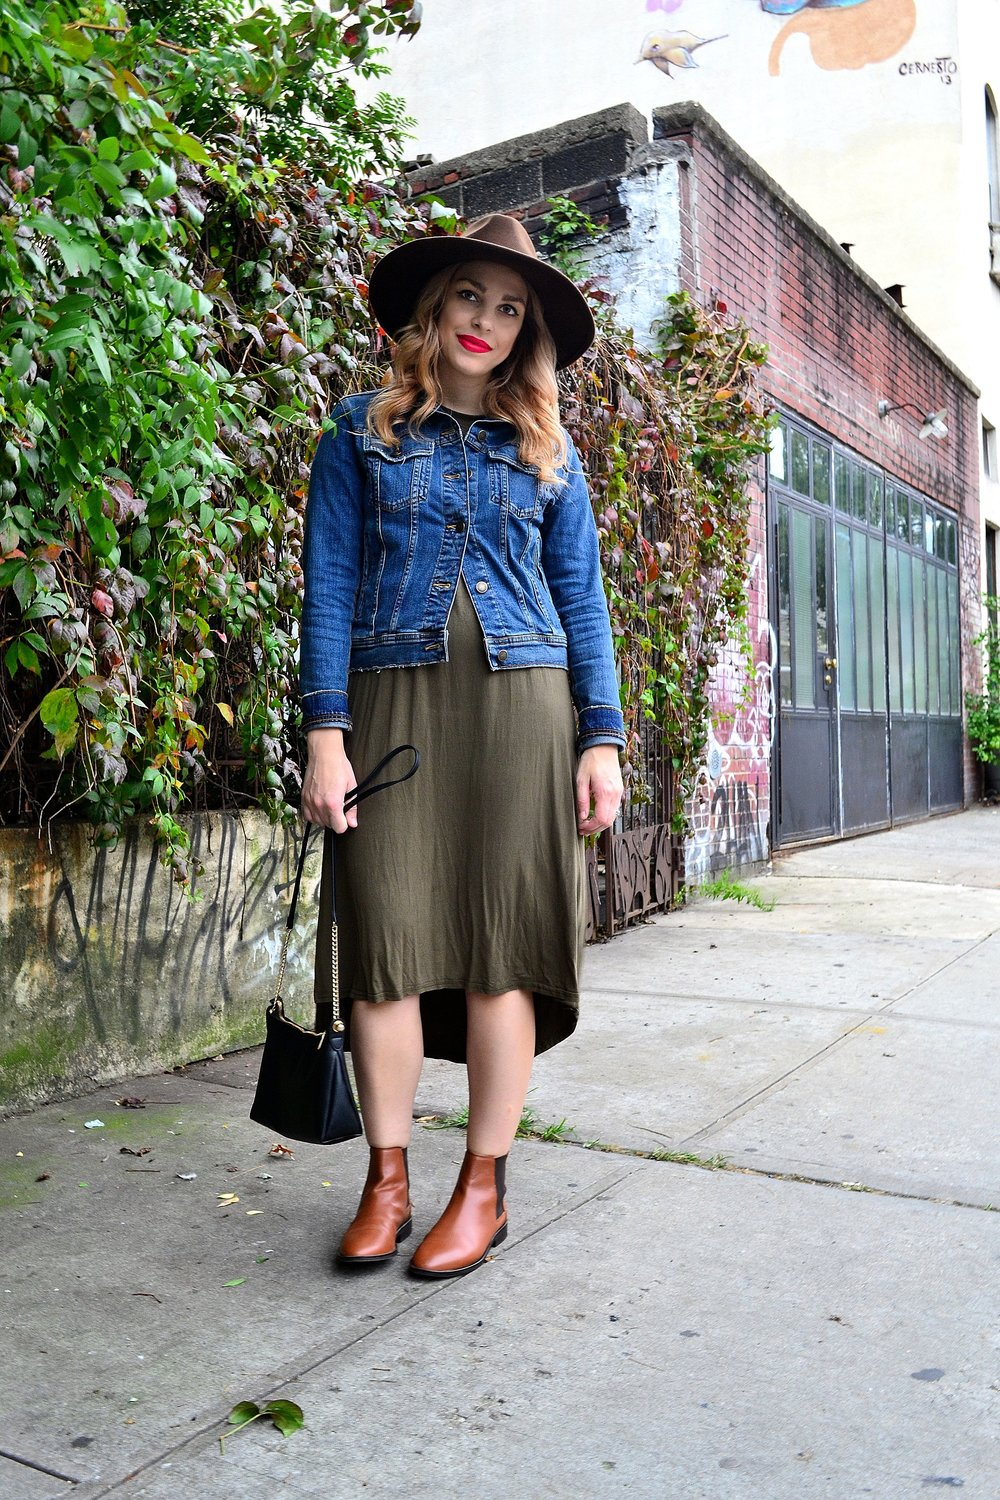 dress- Amazon ,  denim jacket- Zara , hat- Goorin Brothers,  booties- ASOS , purse- H&M